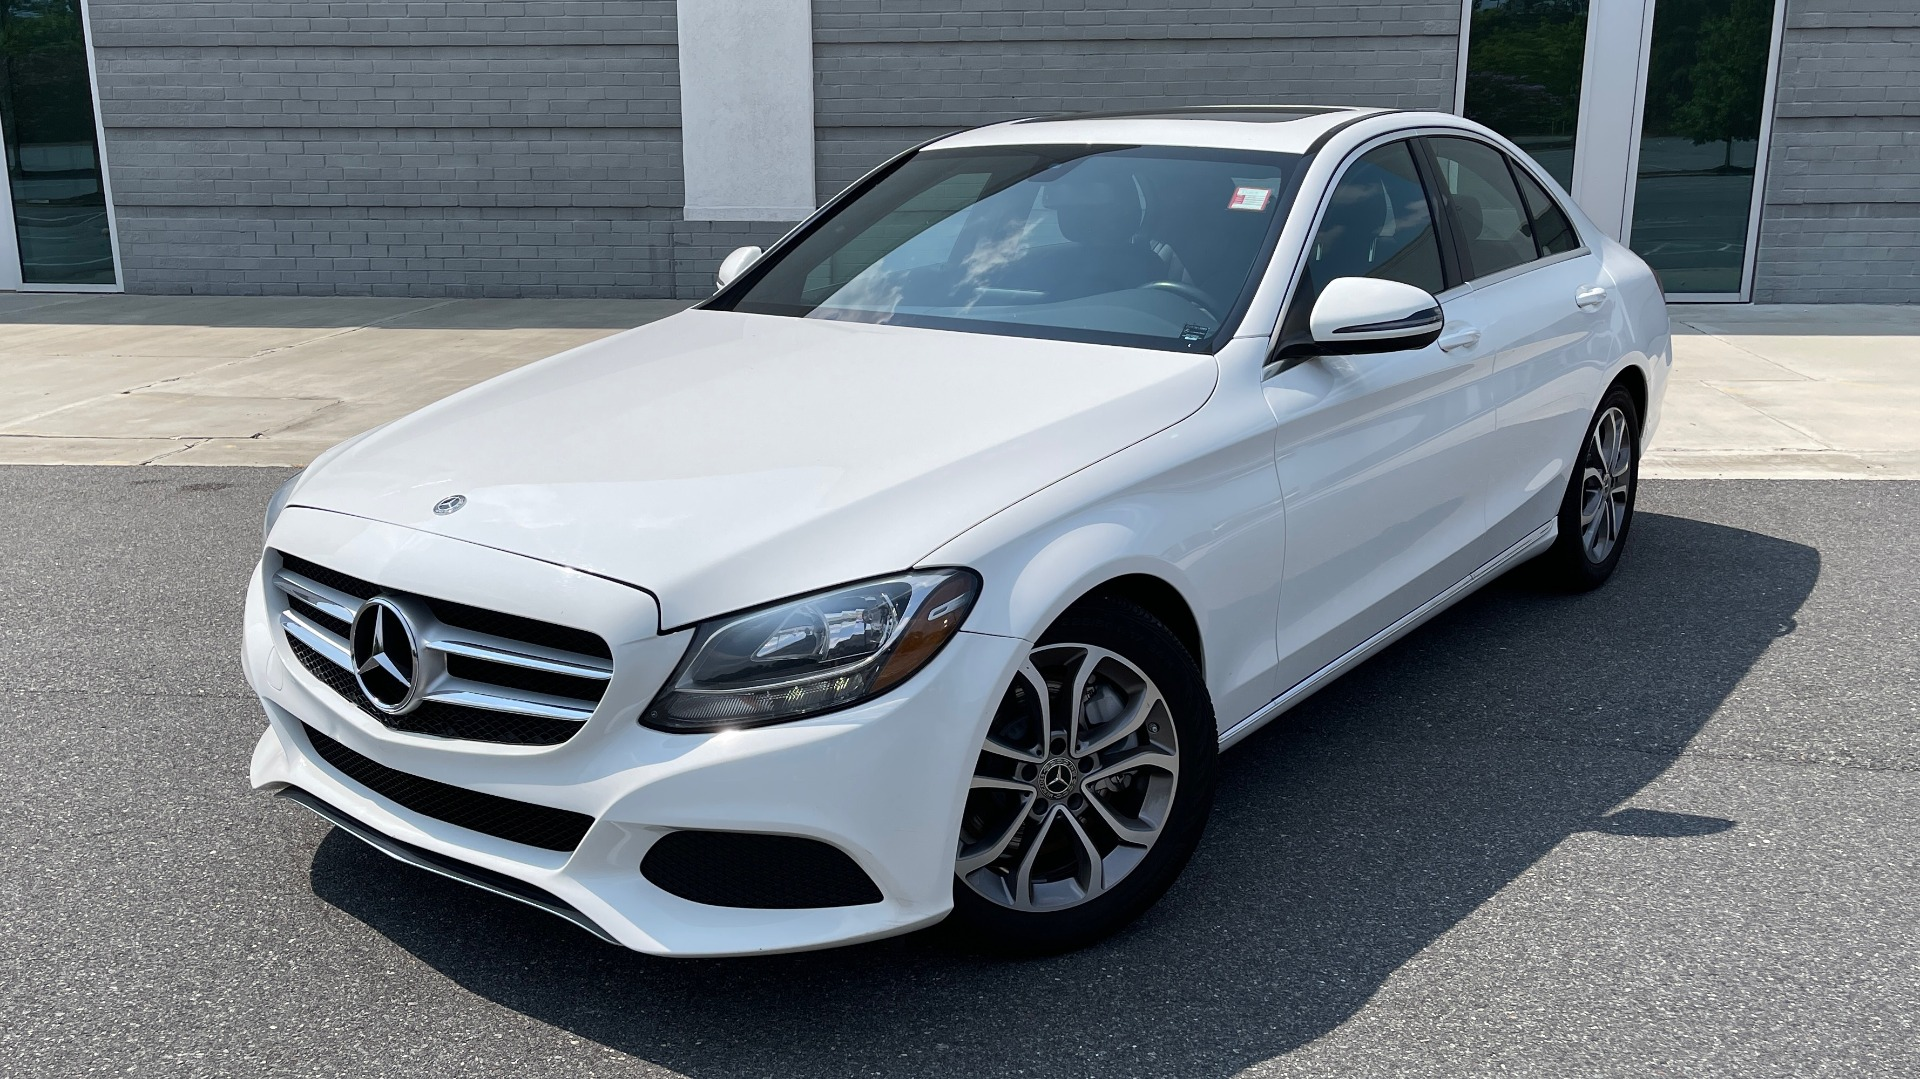 Used 2018 Mercedes-Benz C-CLASS C 300 / 2.0L / RWD / SUNROOF / APPLE~ANDROID / REARVIEW for sale $29,995 at Formula Imports in Charlotte NC 28227 1